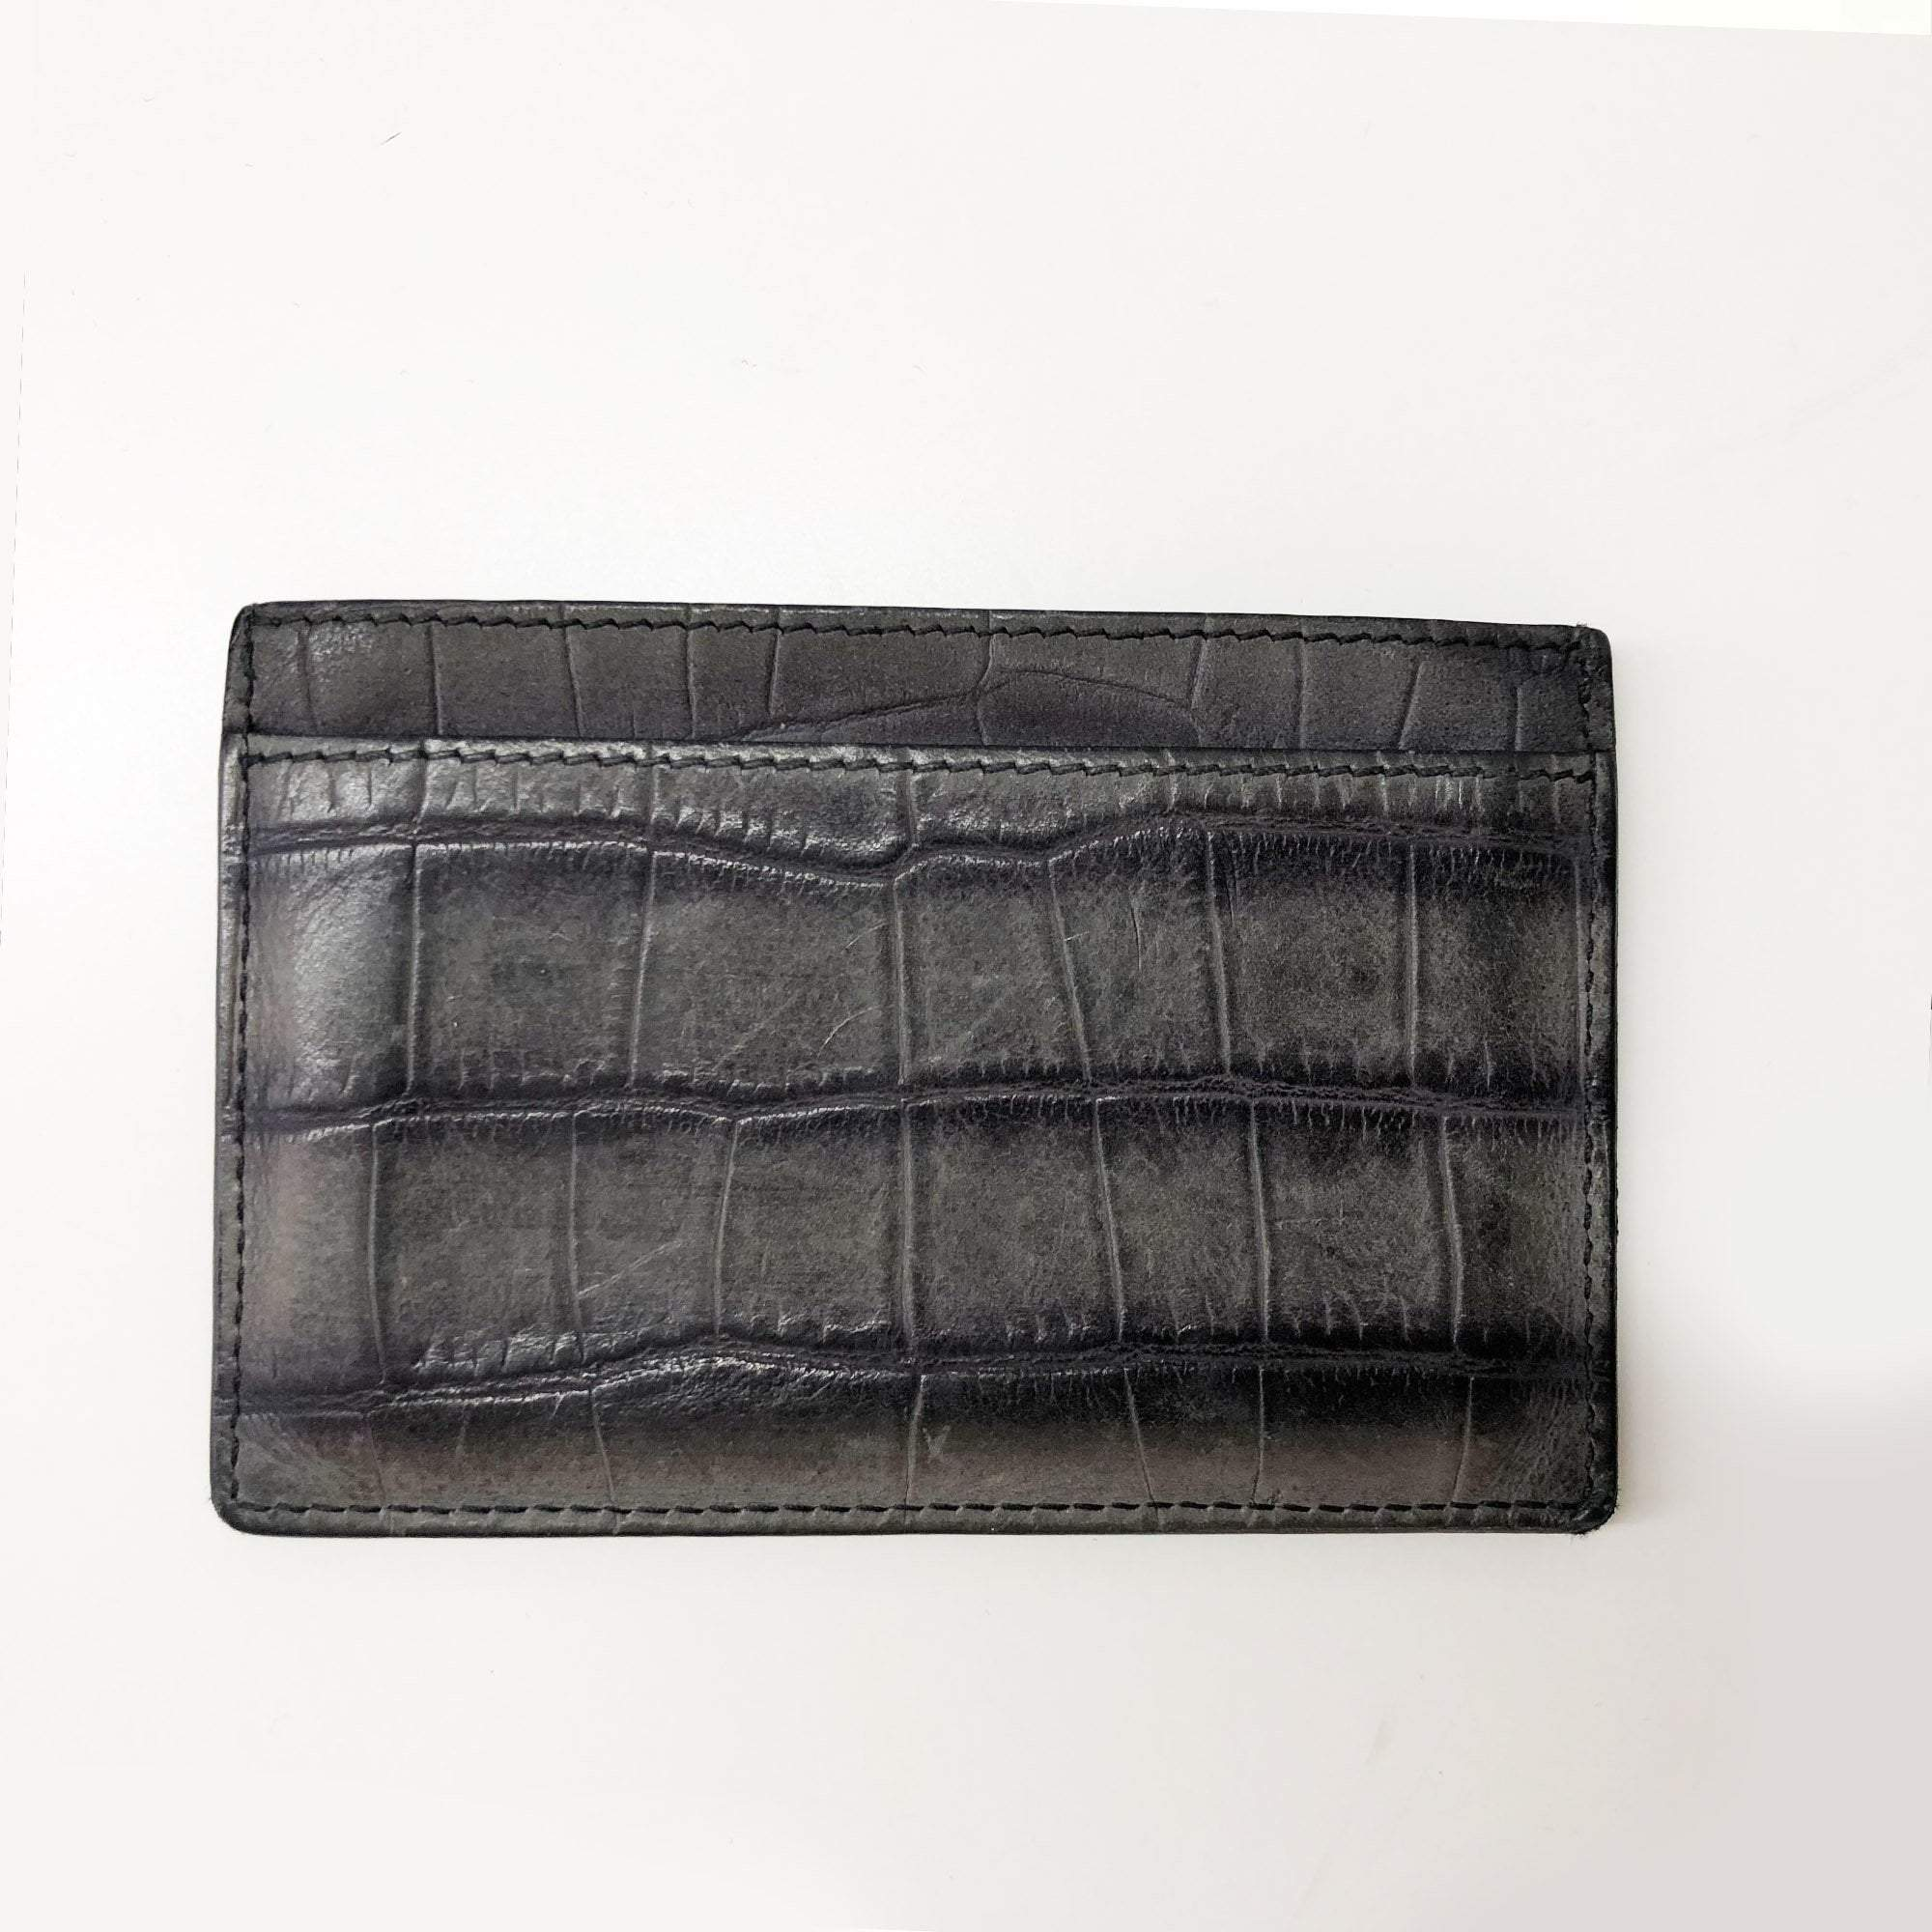 Saint Laurent Croc embossed cardholder